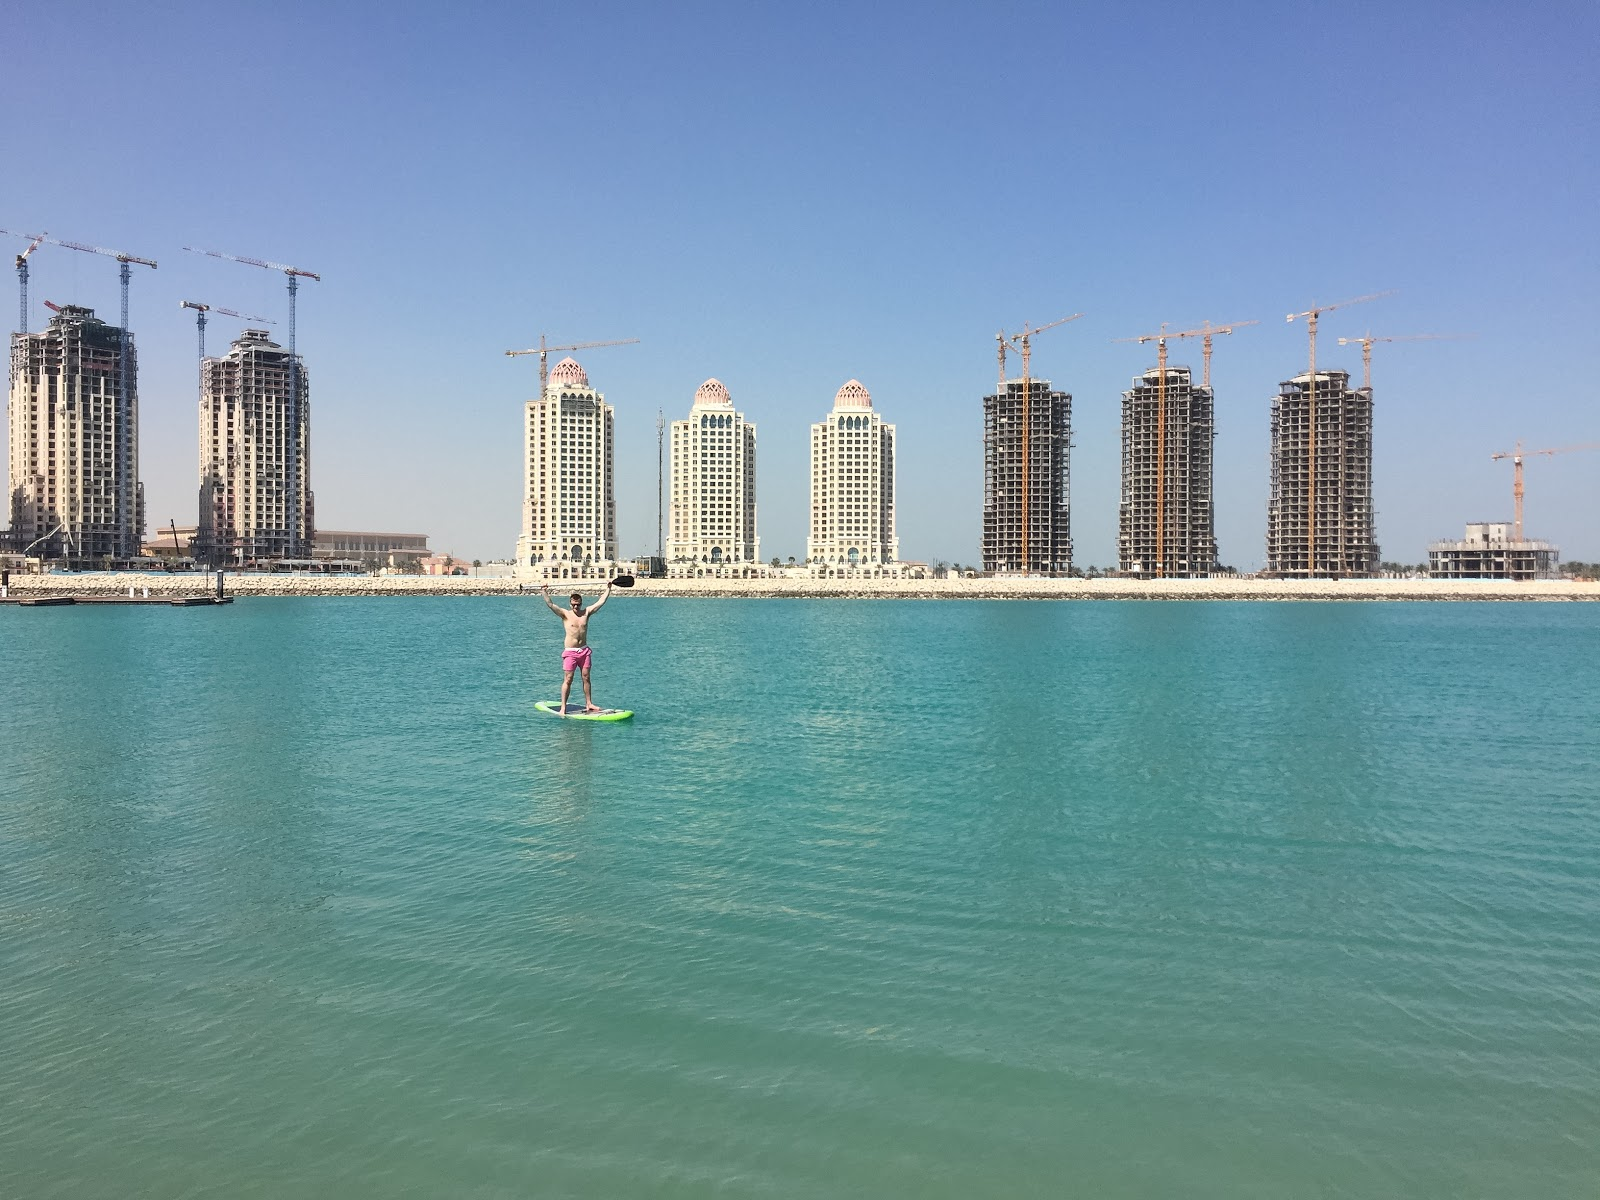 Visiting Qatar: Paddleboarding The Pearl Doha